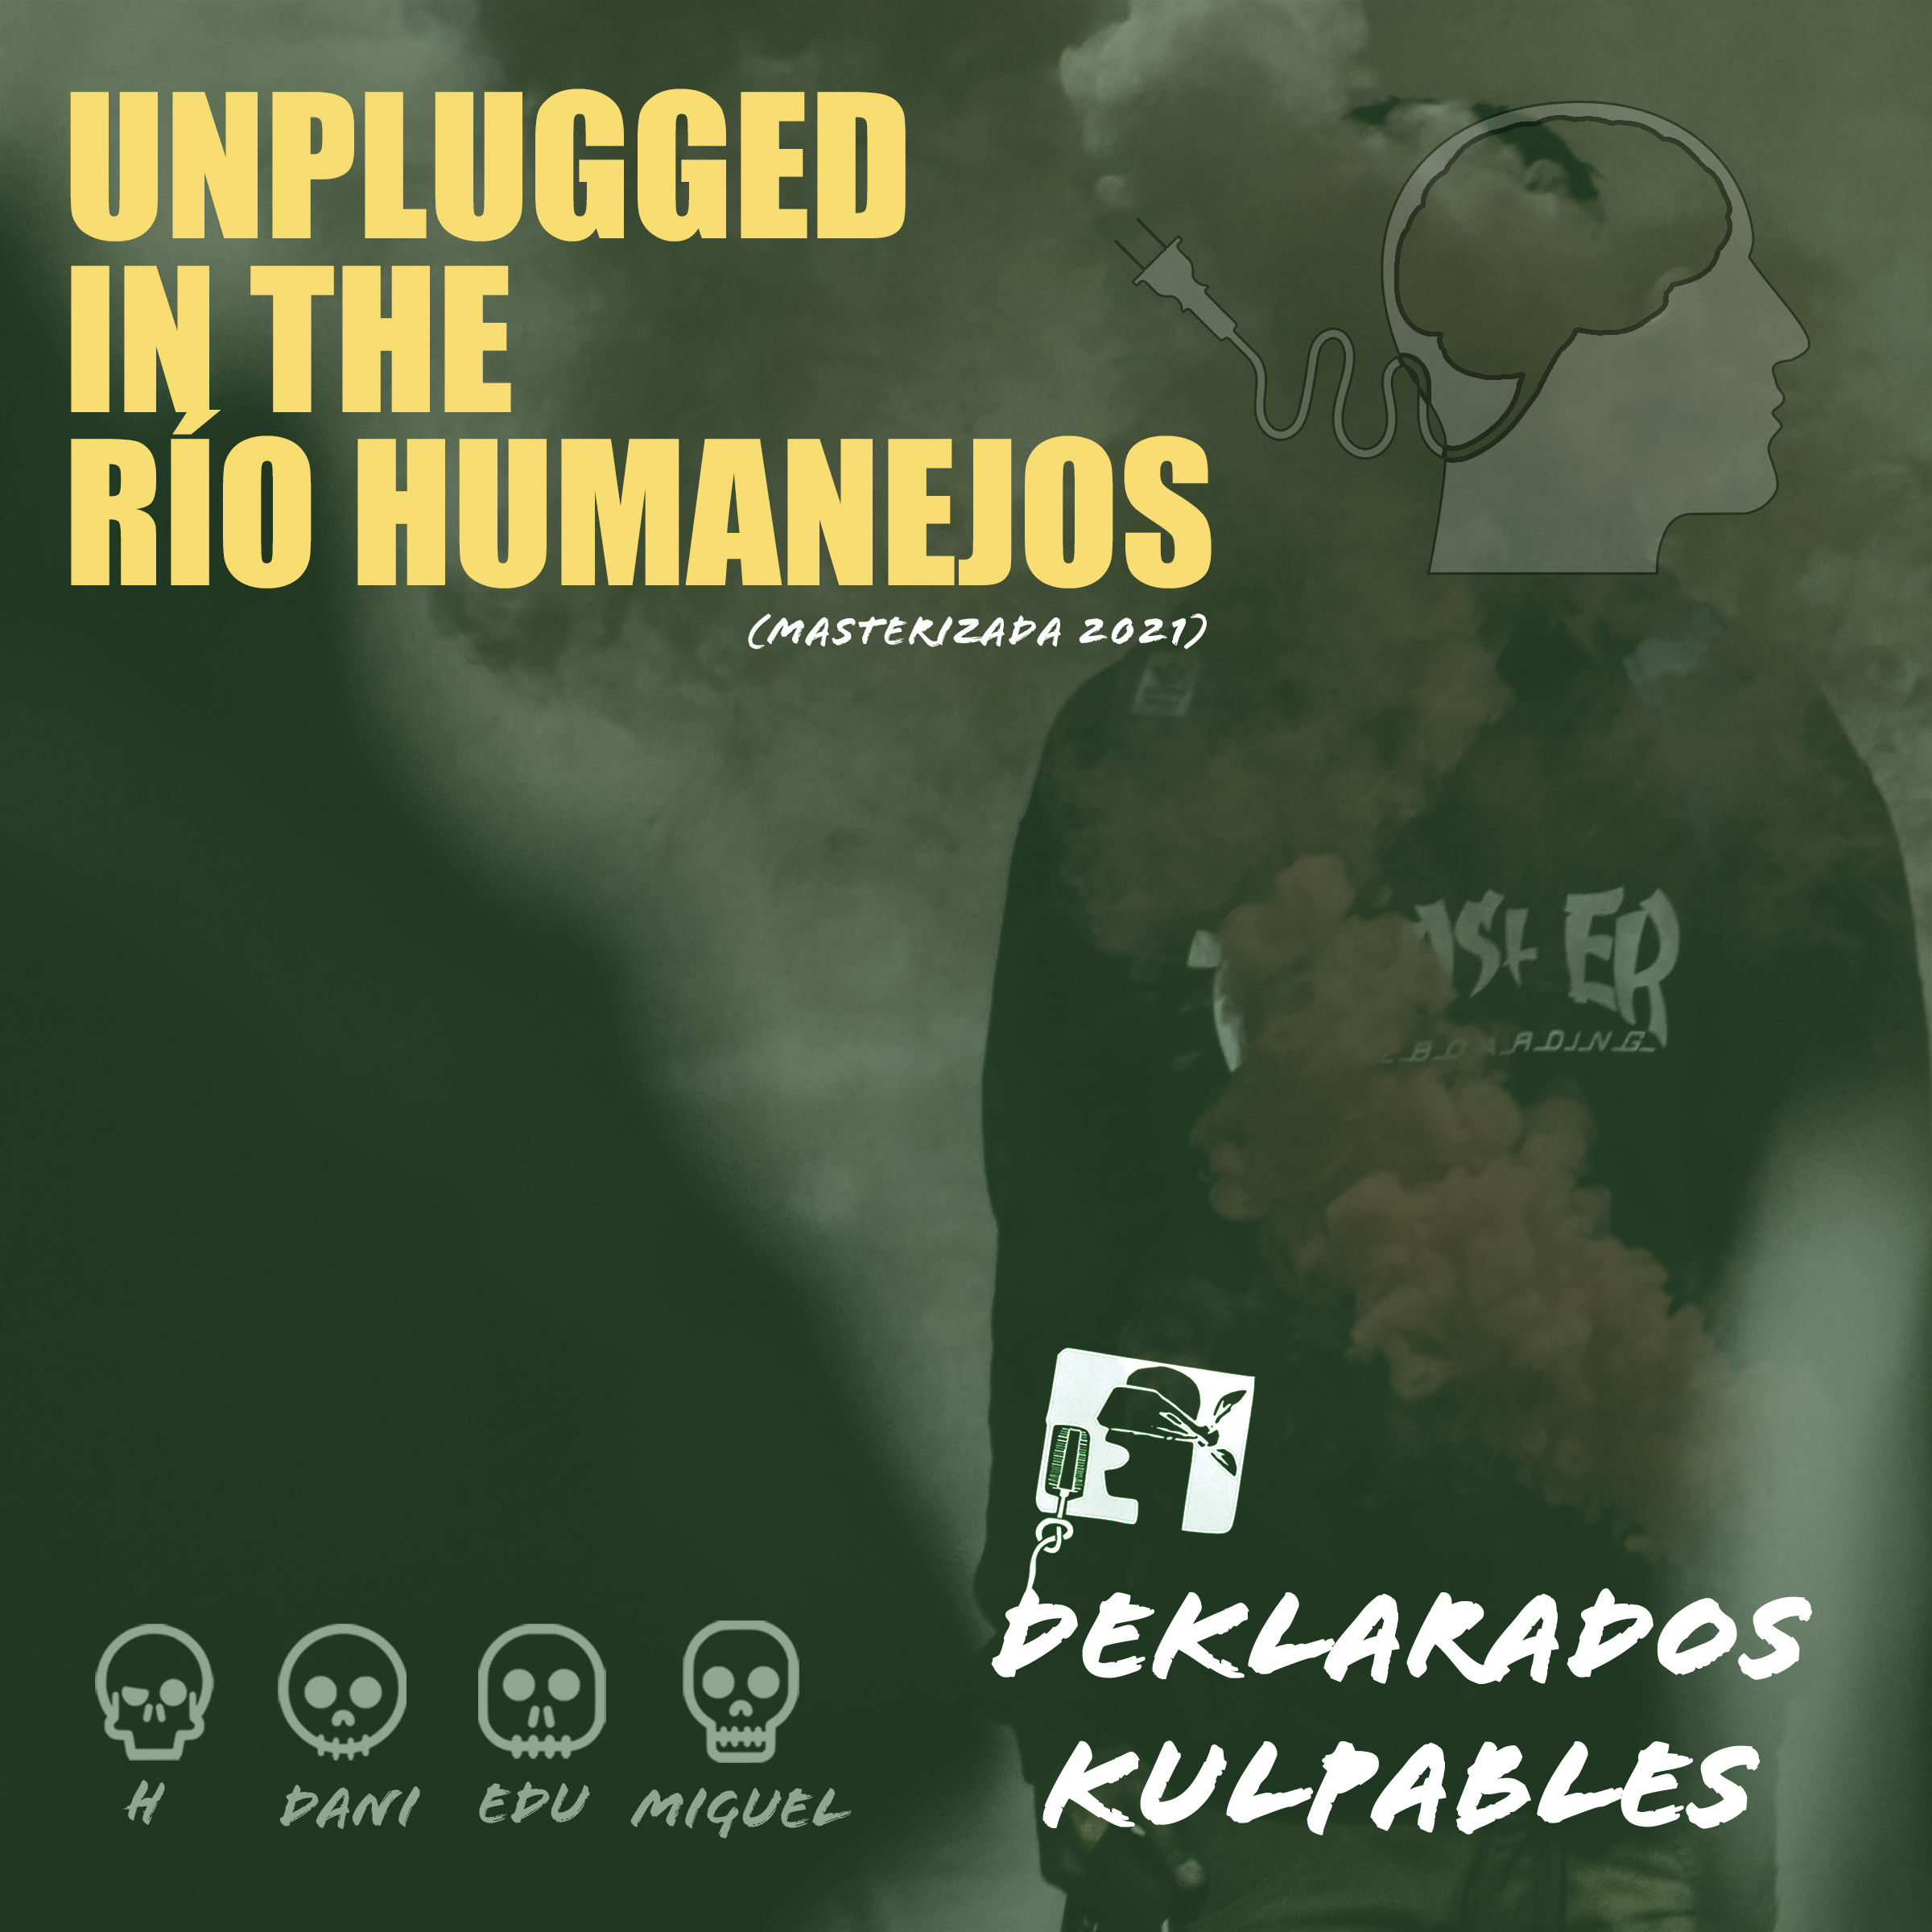 POrtada del disco Unplugged in the Río Humanejos